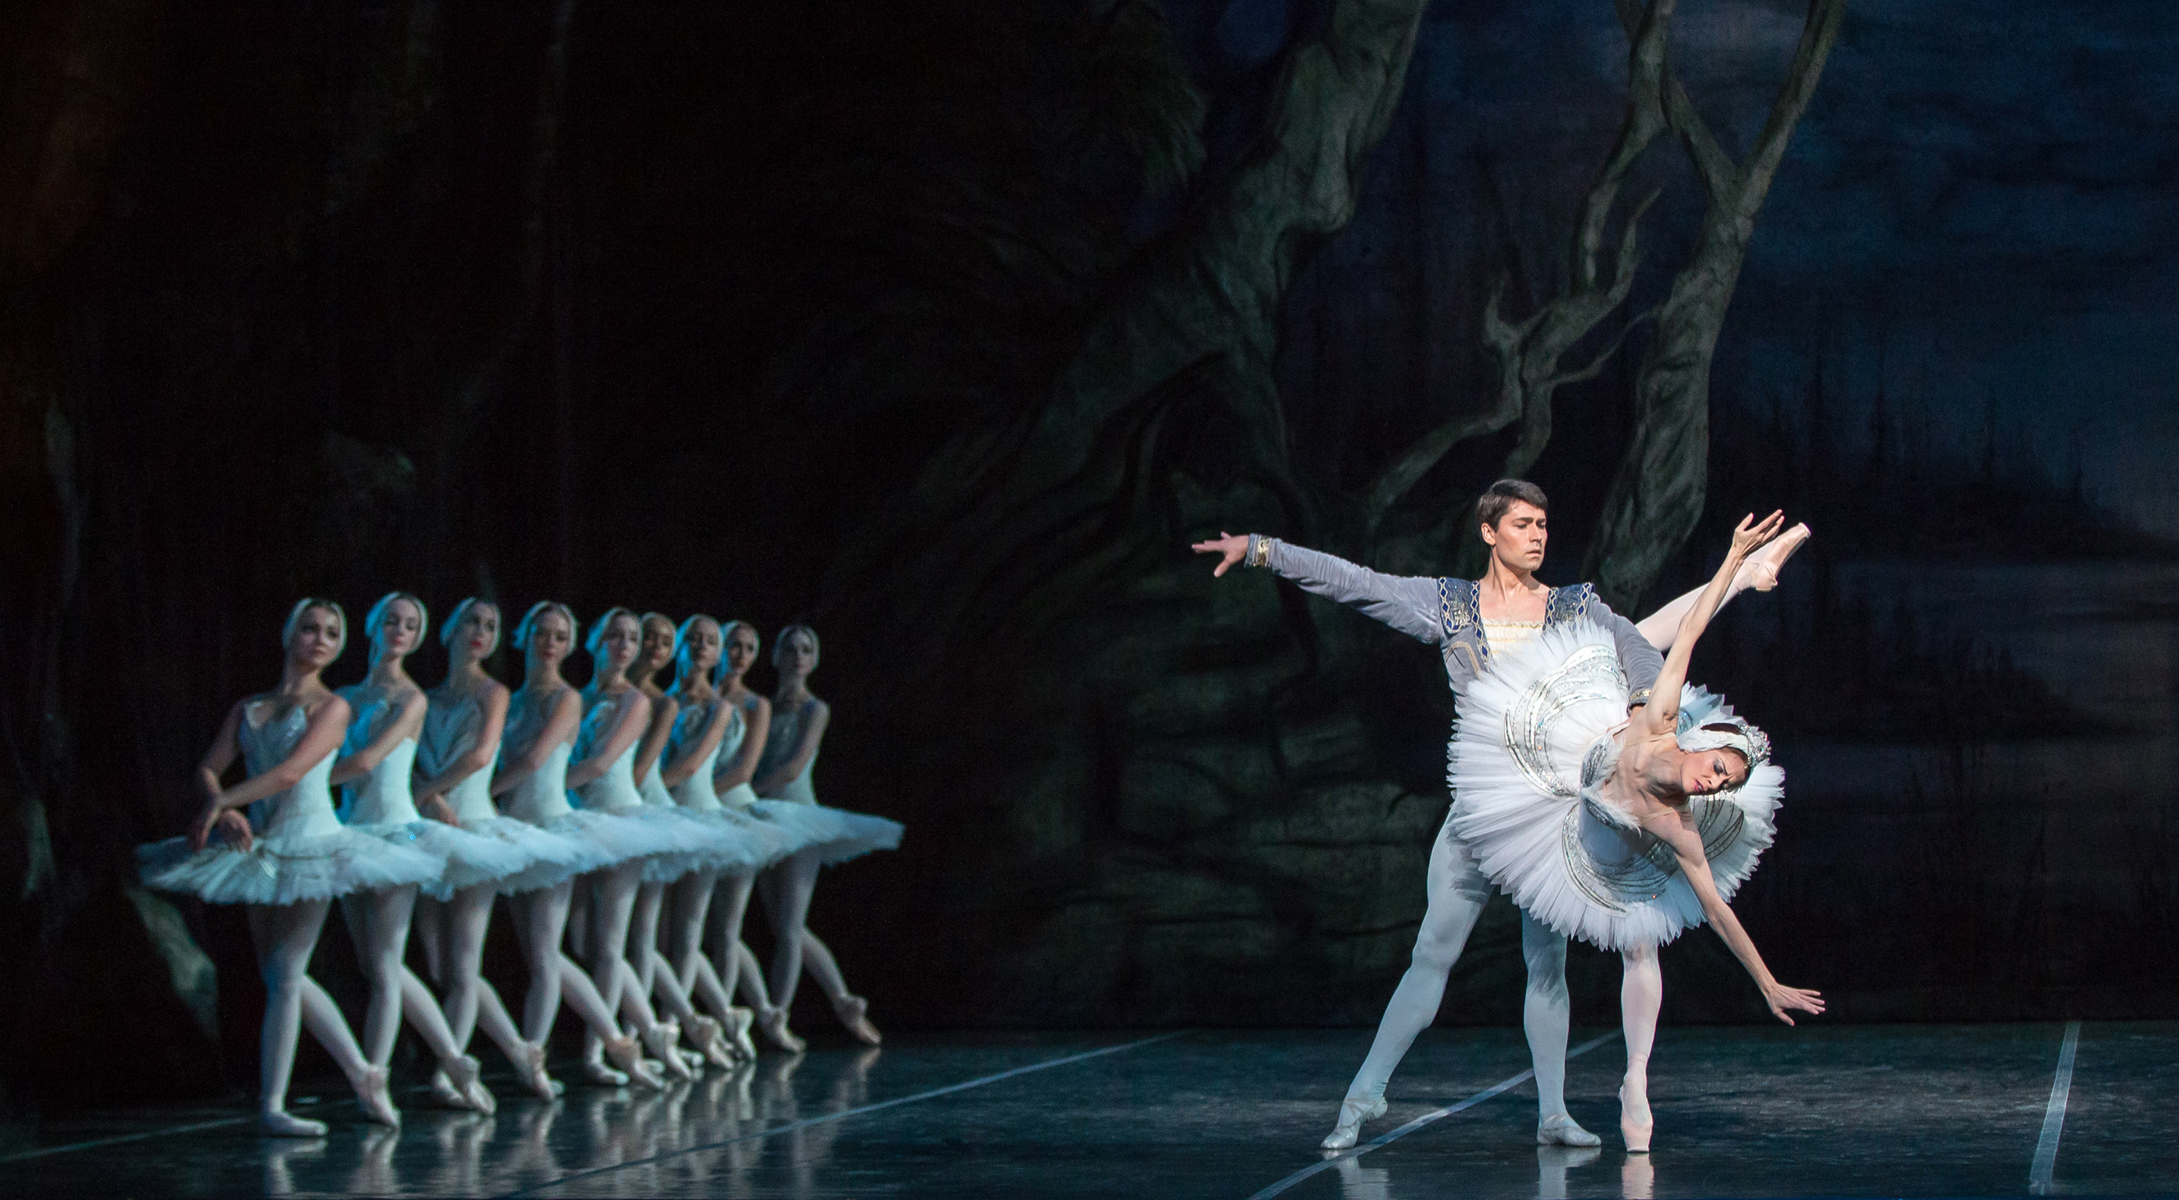 Maria Mosina and Alexei Tyukov and Artists of Colorado Ballet in Swan Lake. Photo by Mike Watson. Image courtesy of Colorado Ballet.